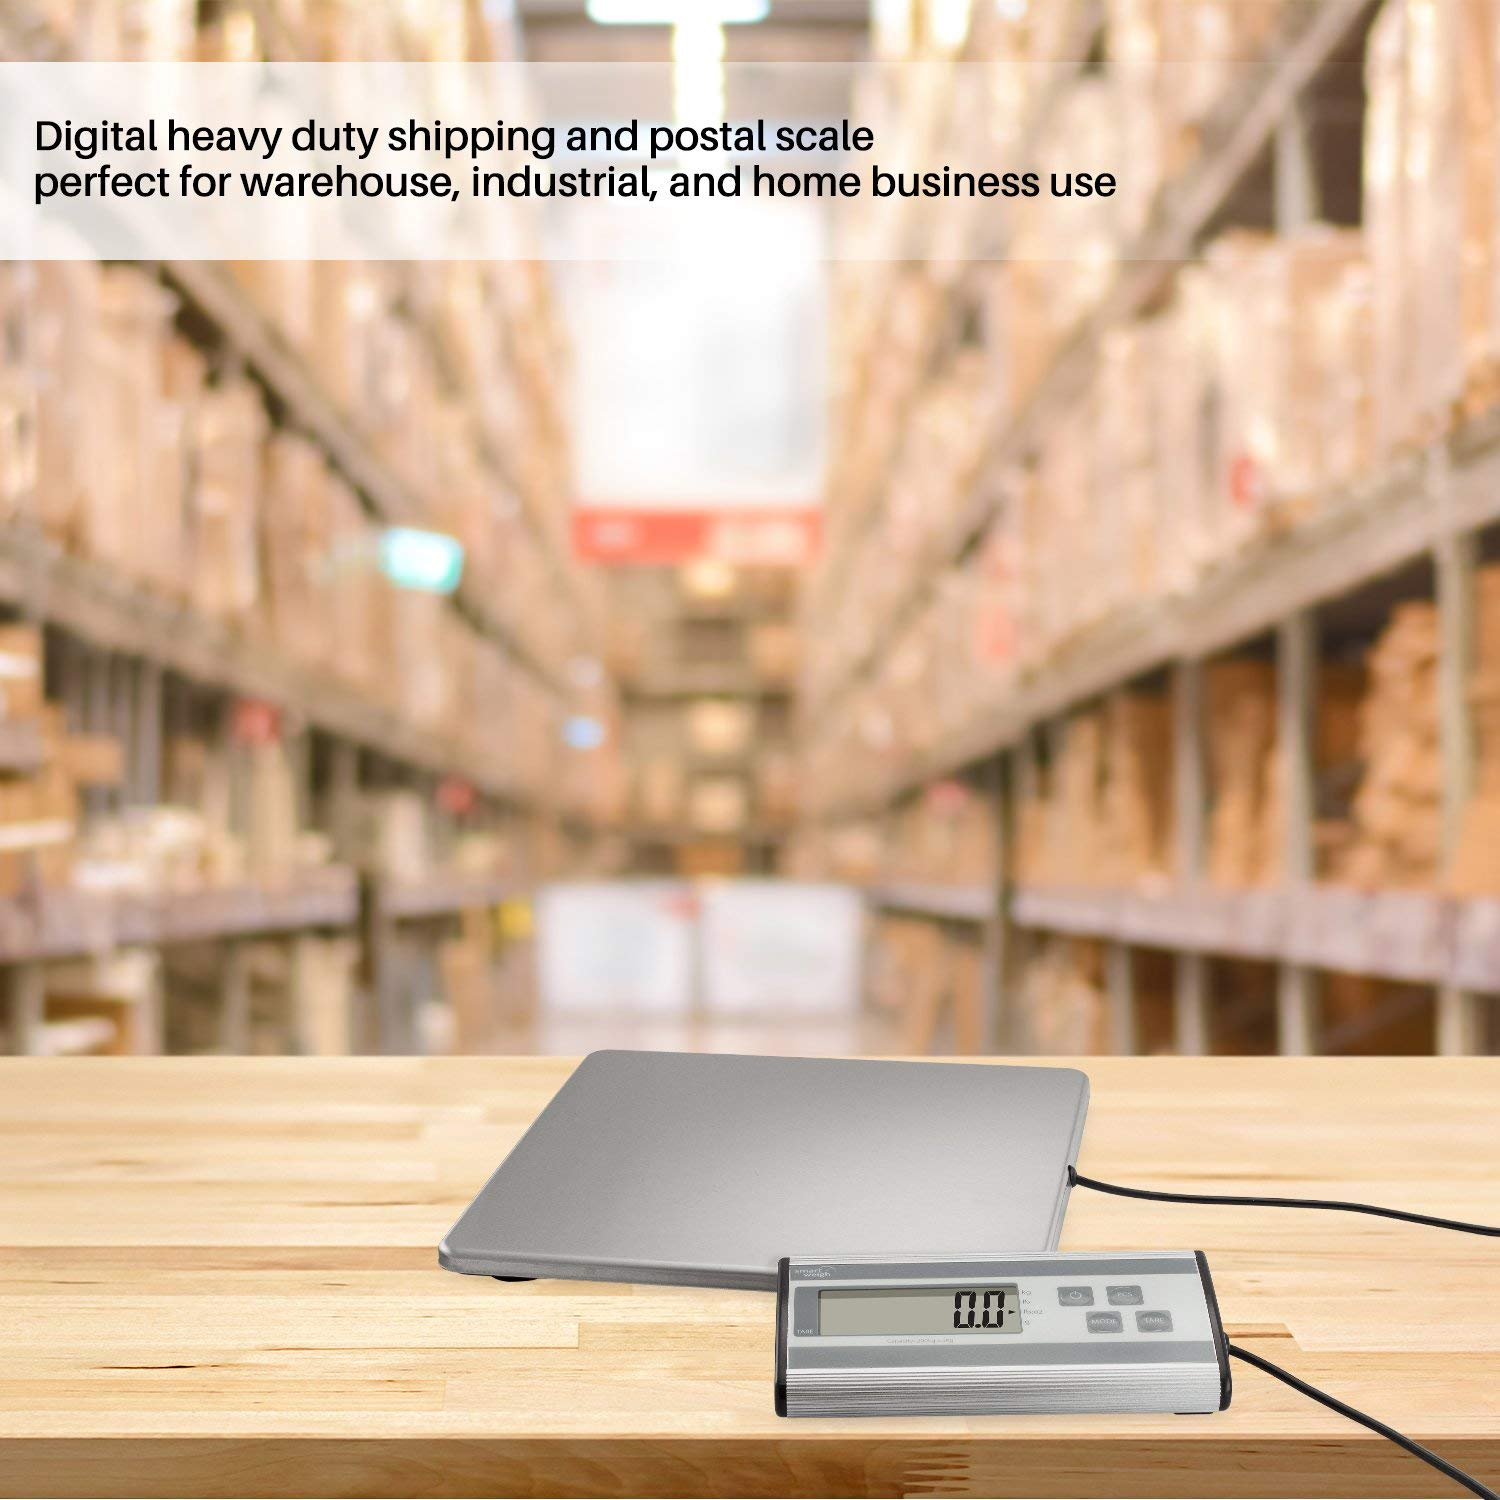 Best Shipping and Postal Scale